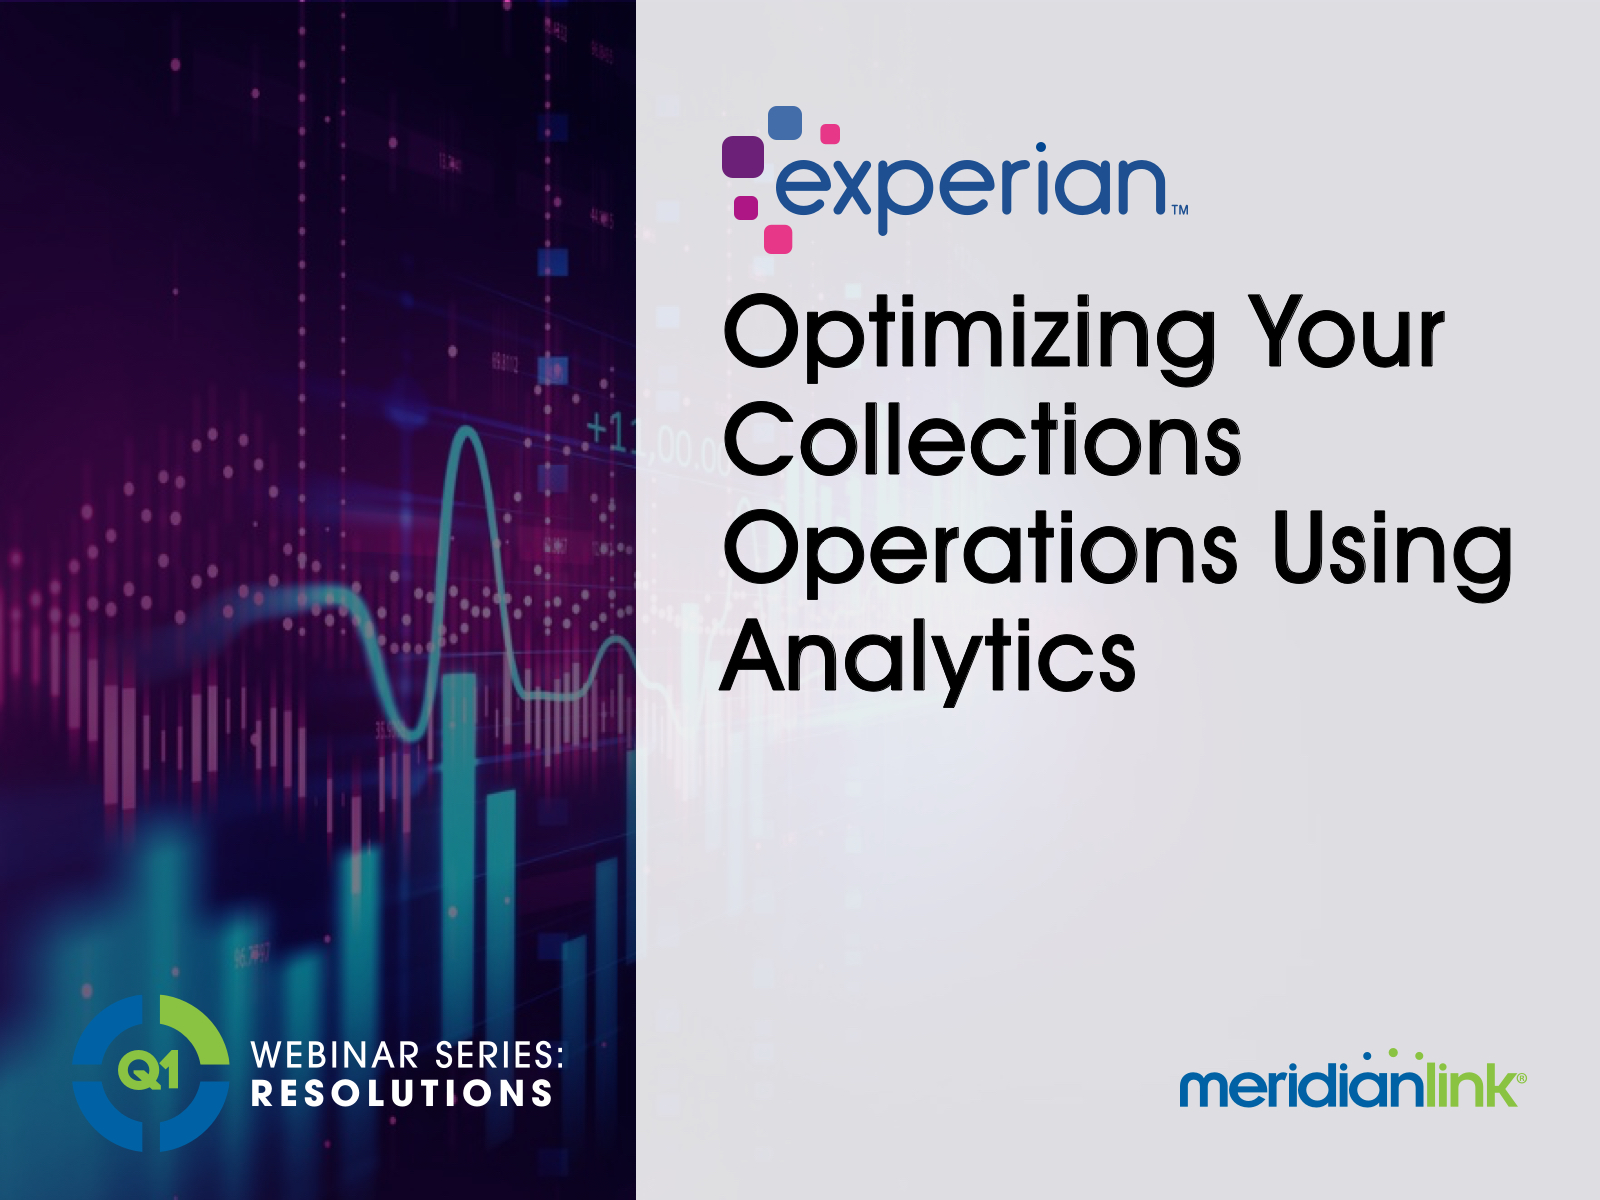 Q1-optimizing-collections-operations